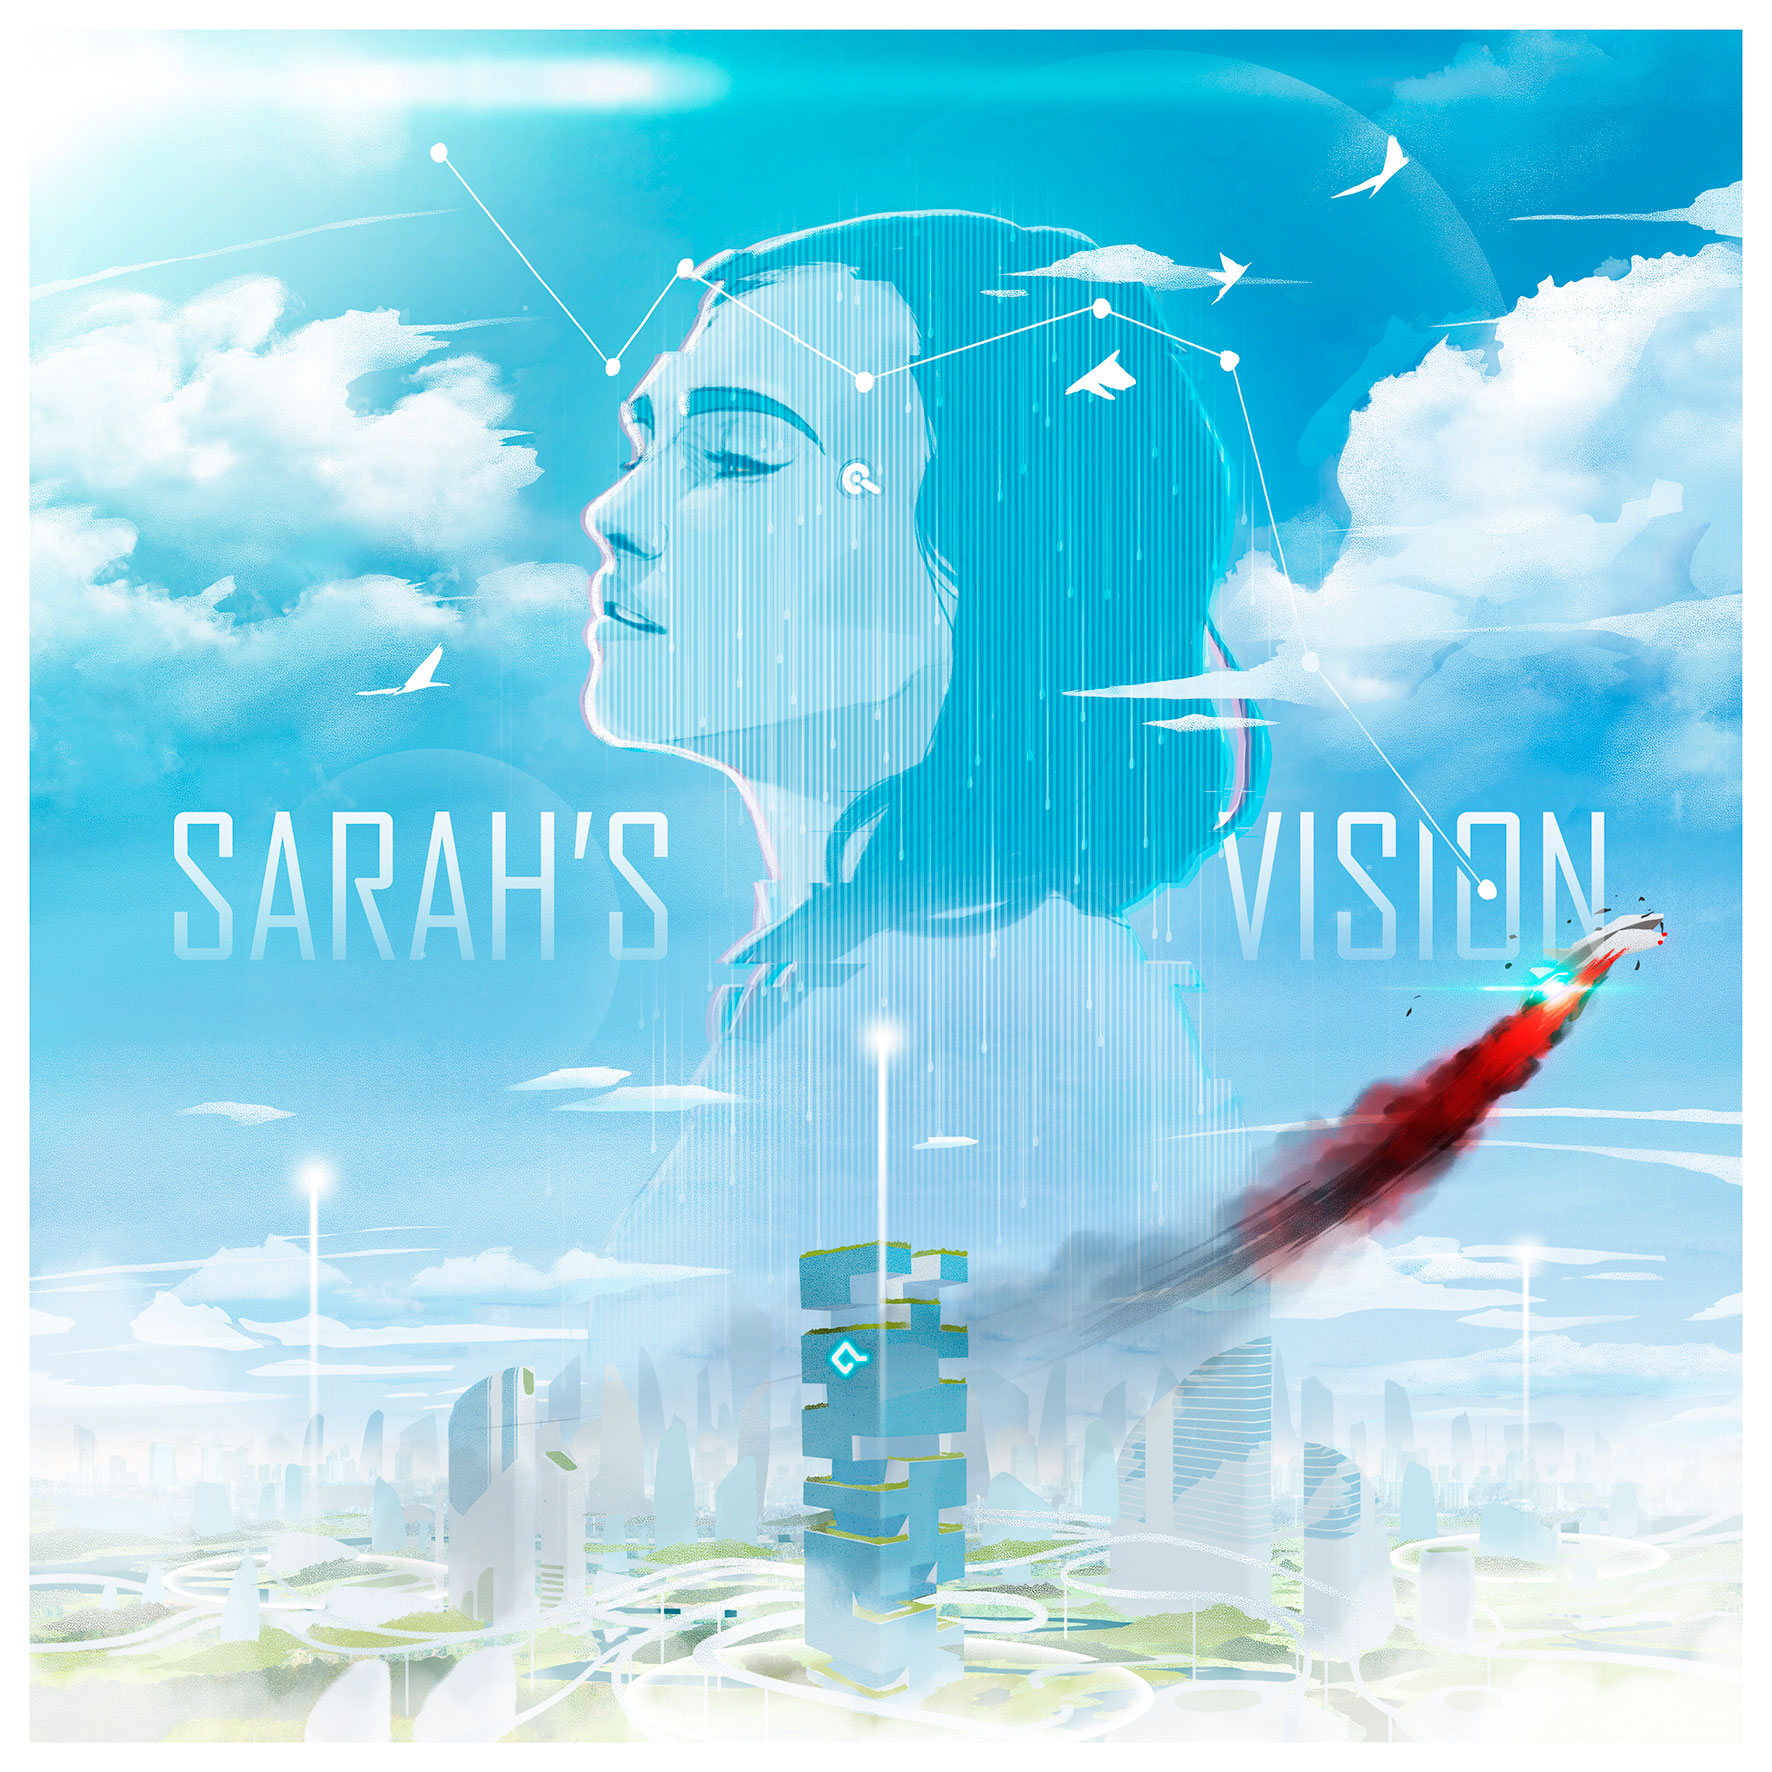 Board Game Cover of Sarah's Vision